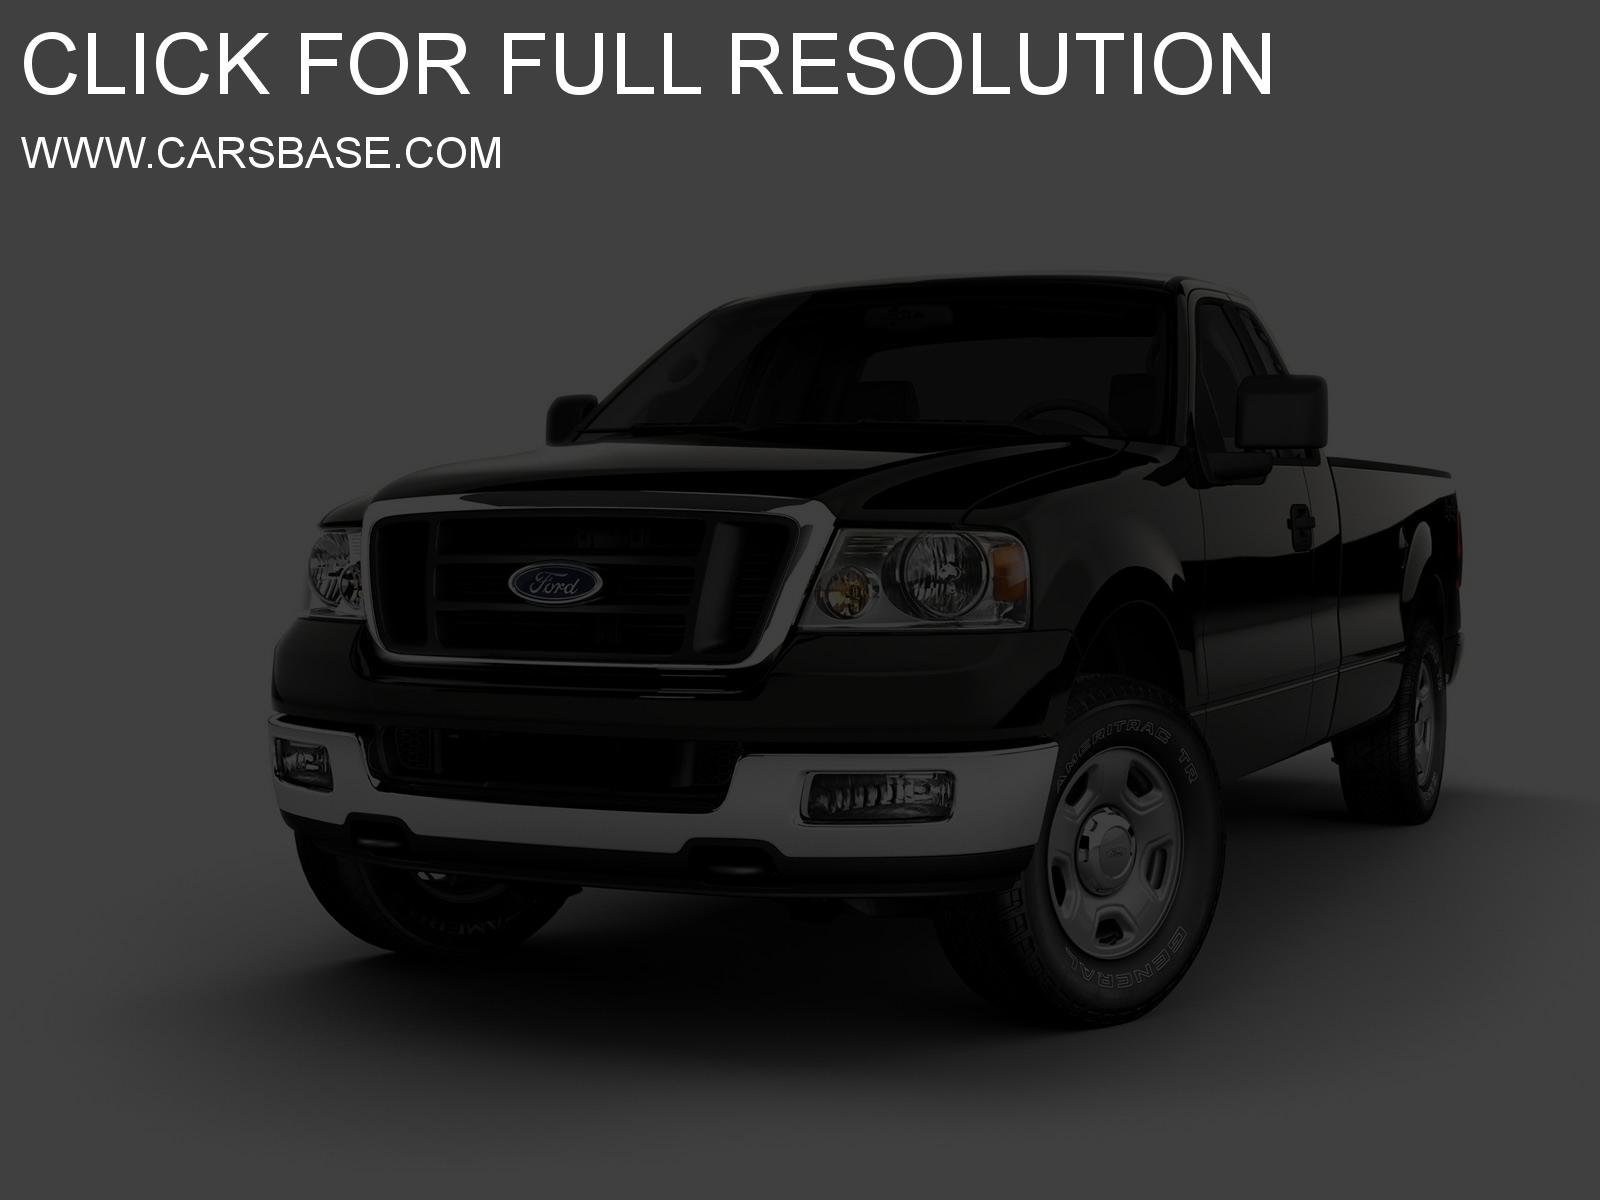 Ford f-150 photo - 3